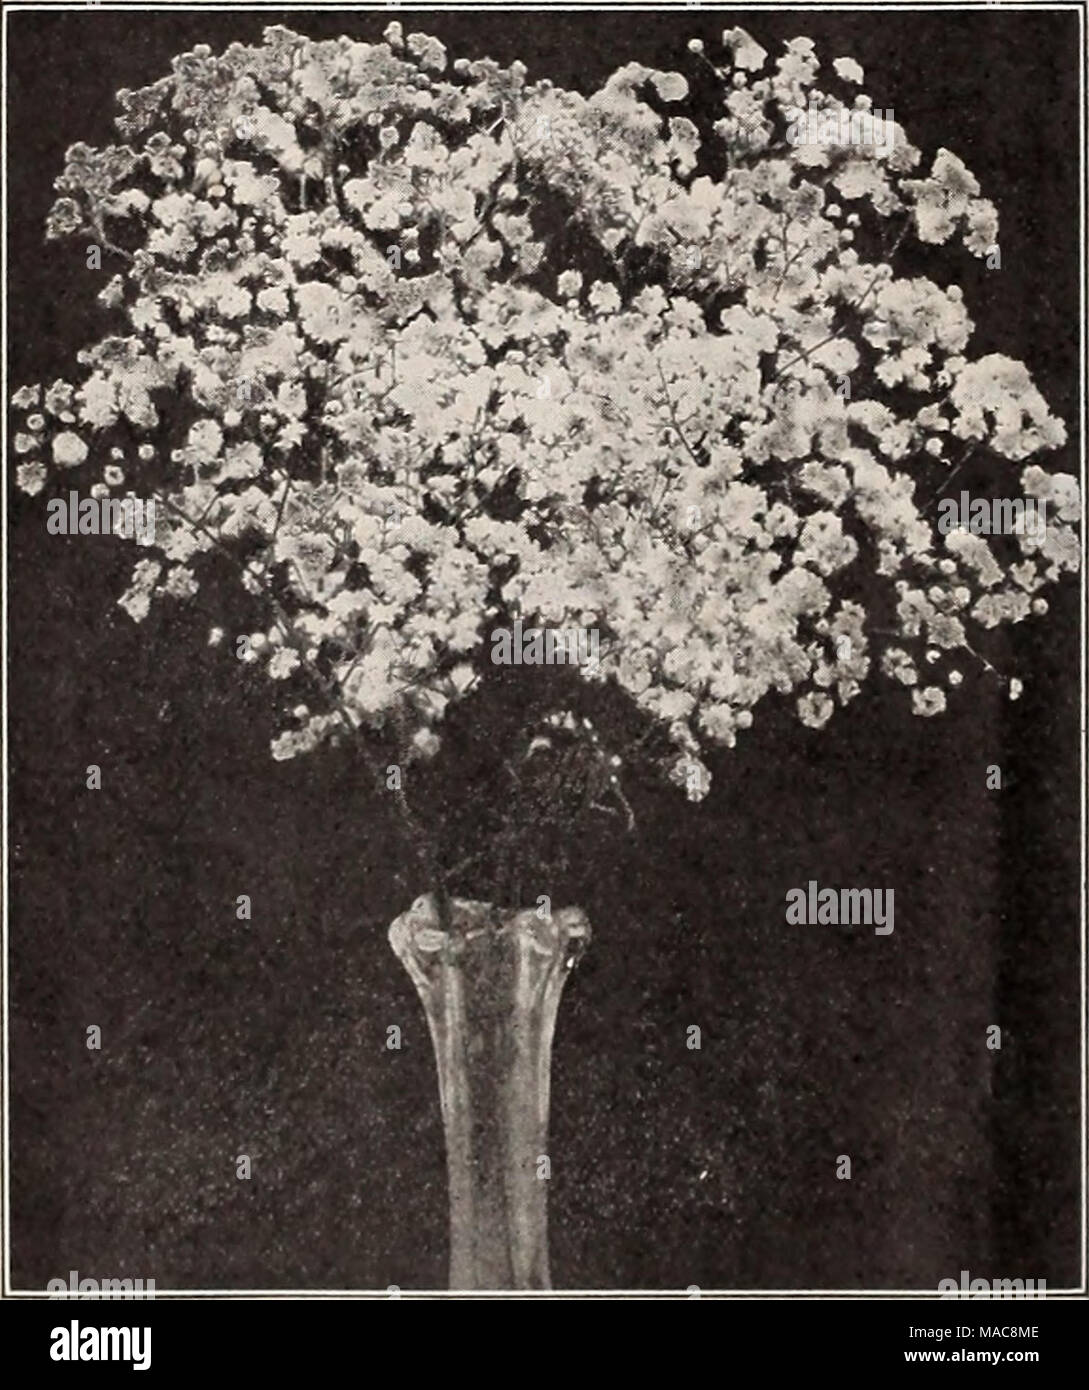 . Dreer's midsummer list 1929 . Double-flowering Gypsophila Gaill.rdl Gr-i^ndiflora GeUm (Avens) PER PKT. 2541 Atrosanguineum Fl. PI. Beautiful hardy peren- nial, bearing profusely large, showy double dark- crimson flowers all through the summer; an elegant flower for bouquets;'18 inches, j oz., 50 cts SO 10 2542 Mrs. Bradshaw. Large double brilliant orange scarlet; in flower throughout the entire summer 15 2543 Lady Stratheden. New double-flowering golden-yellow. 5 pkts., Sl.OO 25 Grevillea (suk oak) 2681 Robusta. A very beautiful and graceful deco- rative plant with fern-like foliage; exce Stock Photo